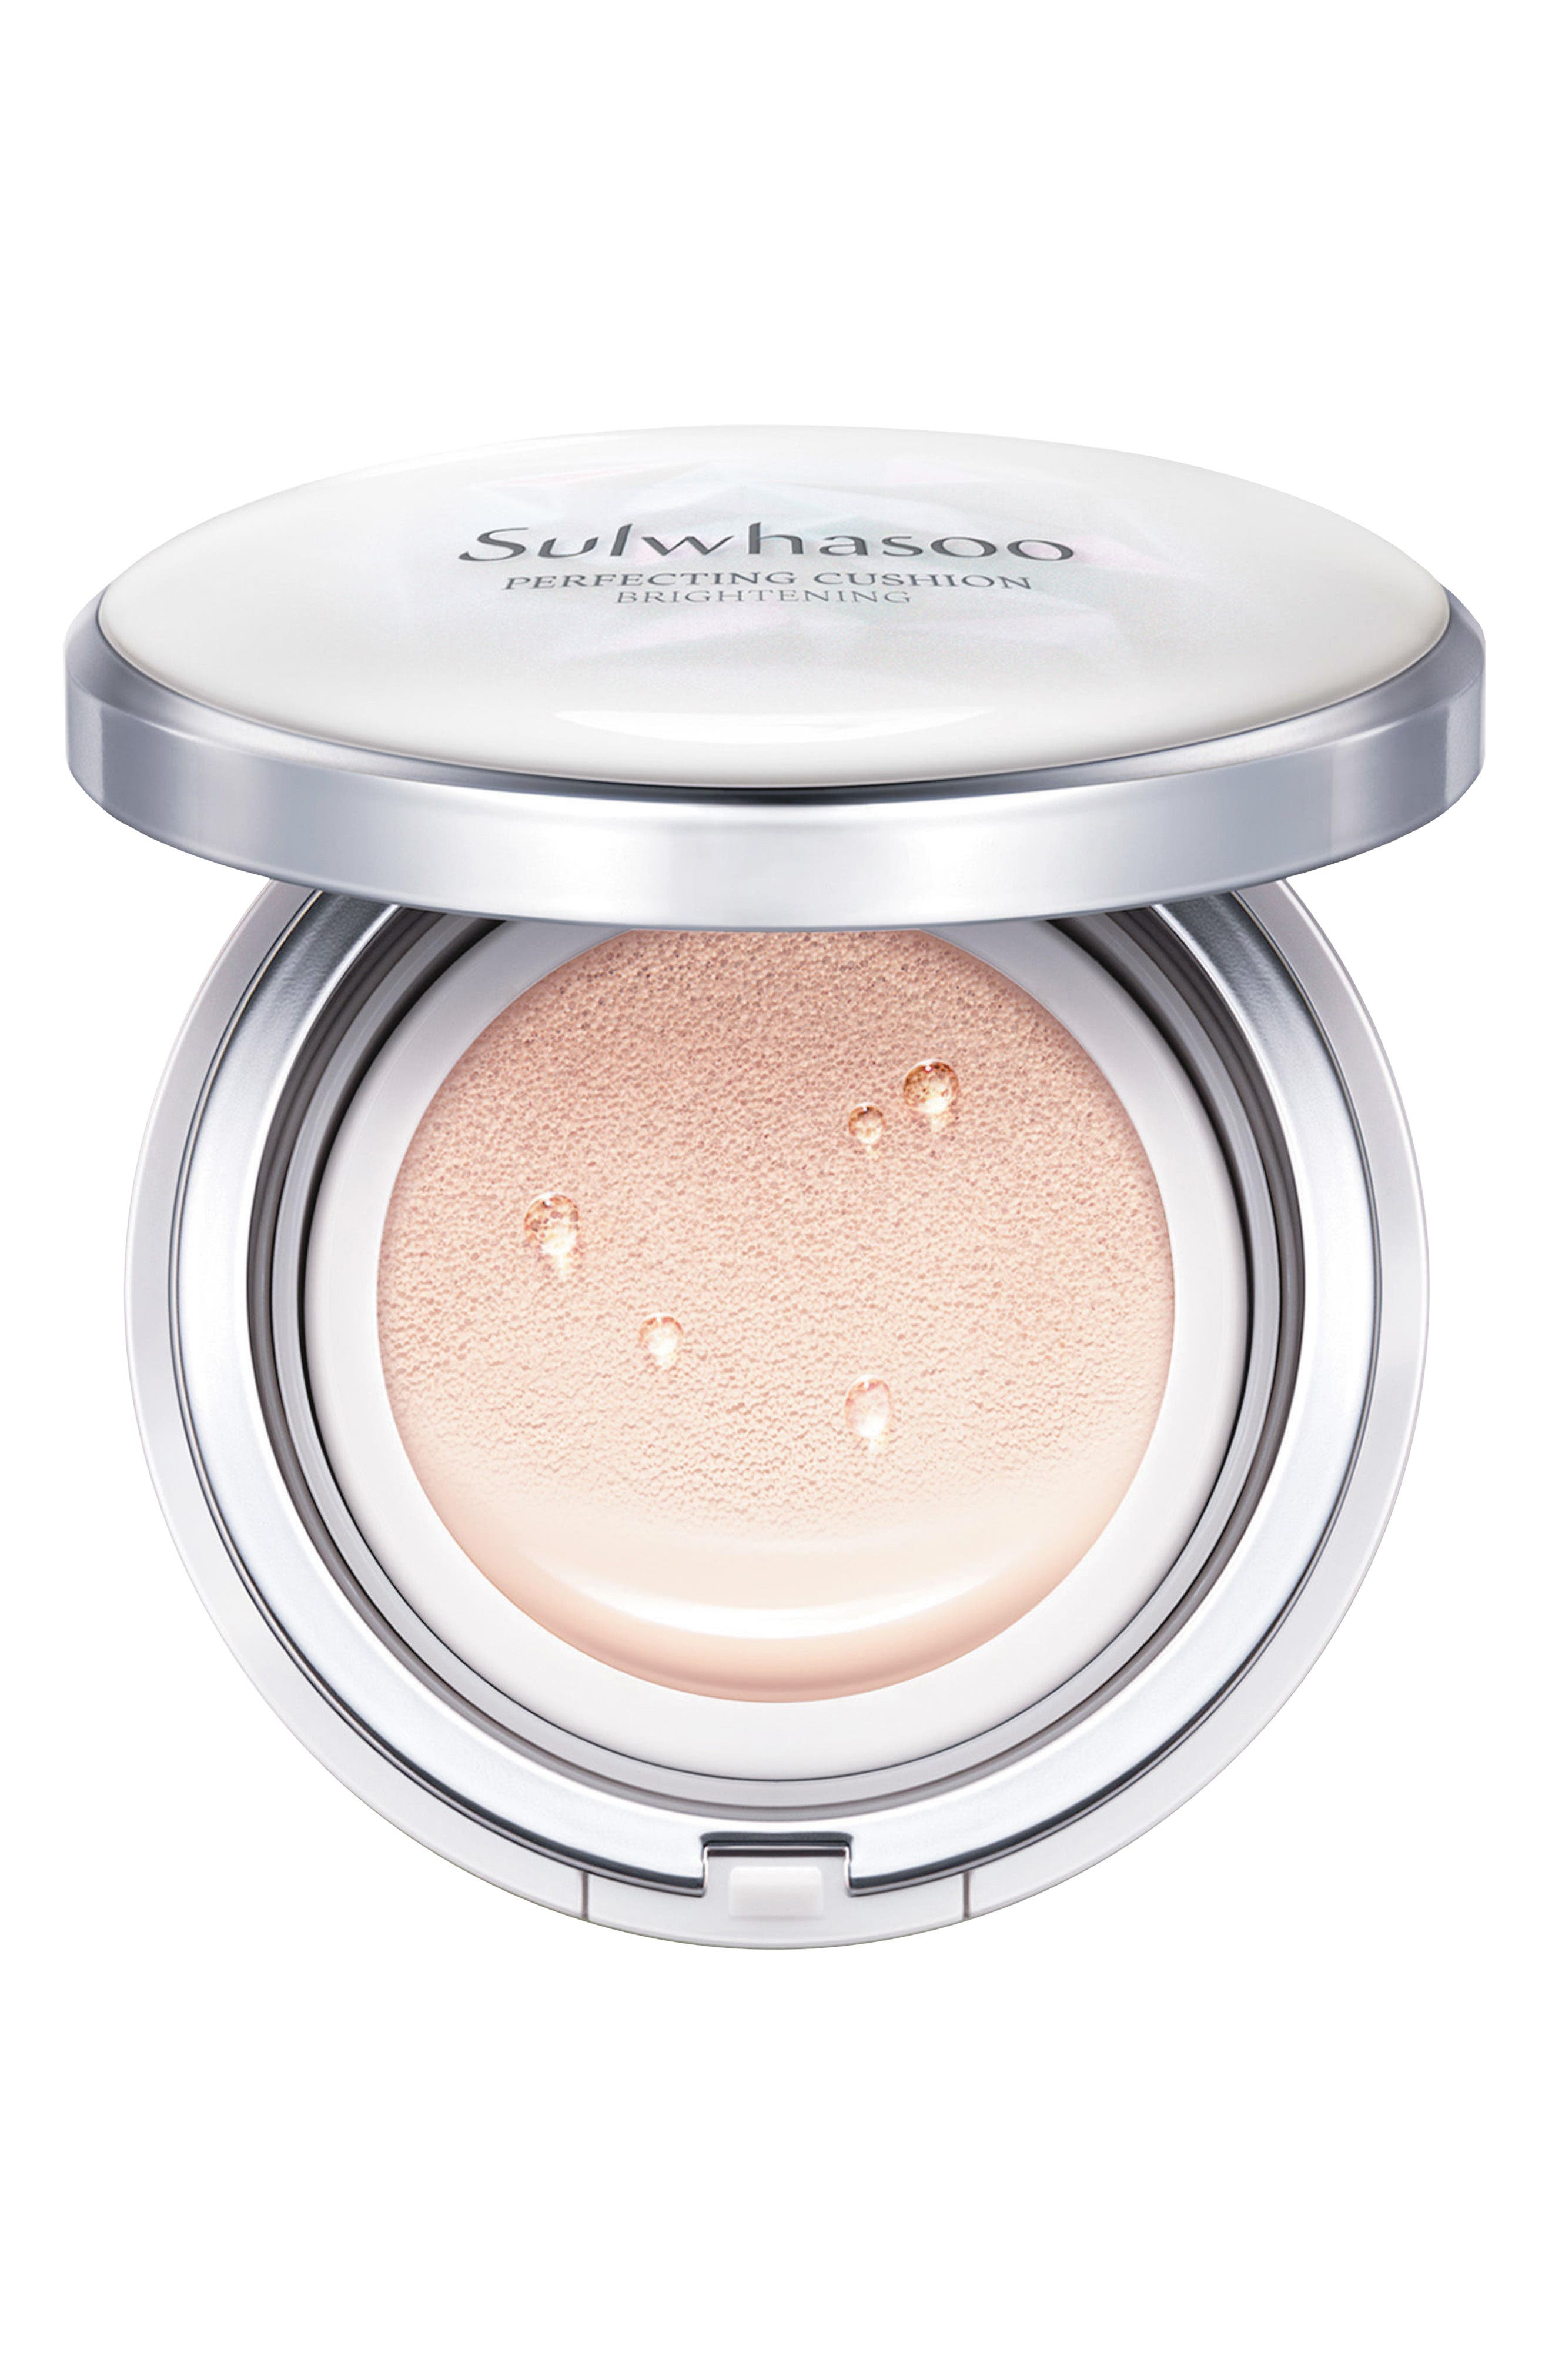 Perfecting Cushion Brightening Foundation,                             Alternate thumbnail 5, color,                             11 PALE PINK